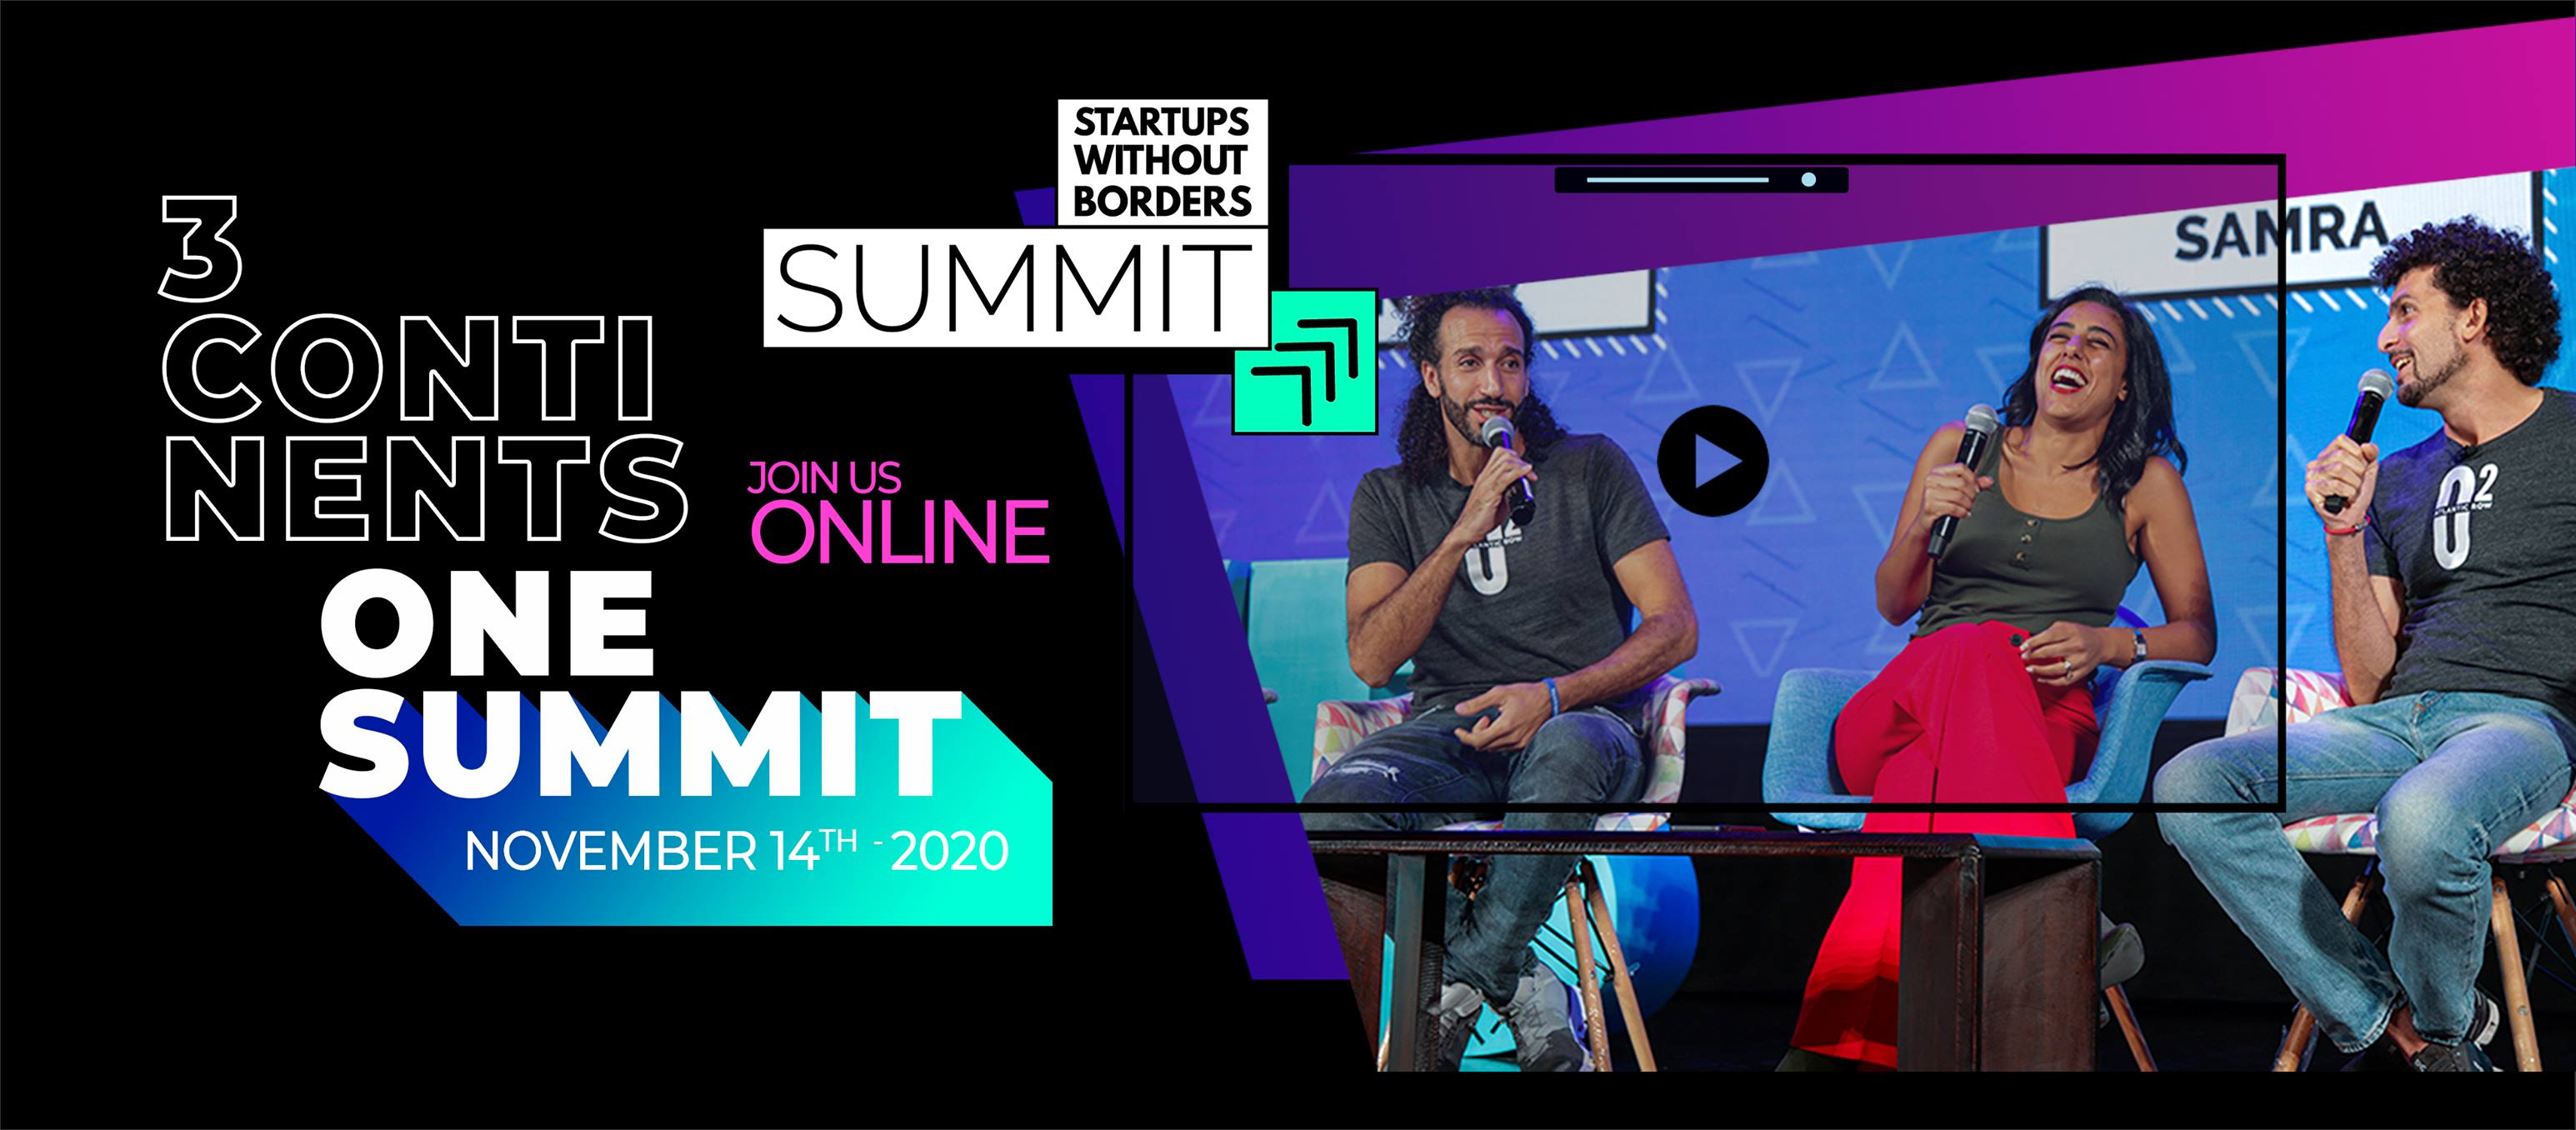 Startups Without Borders Summit 2020